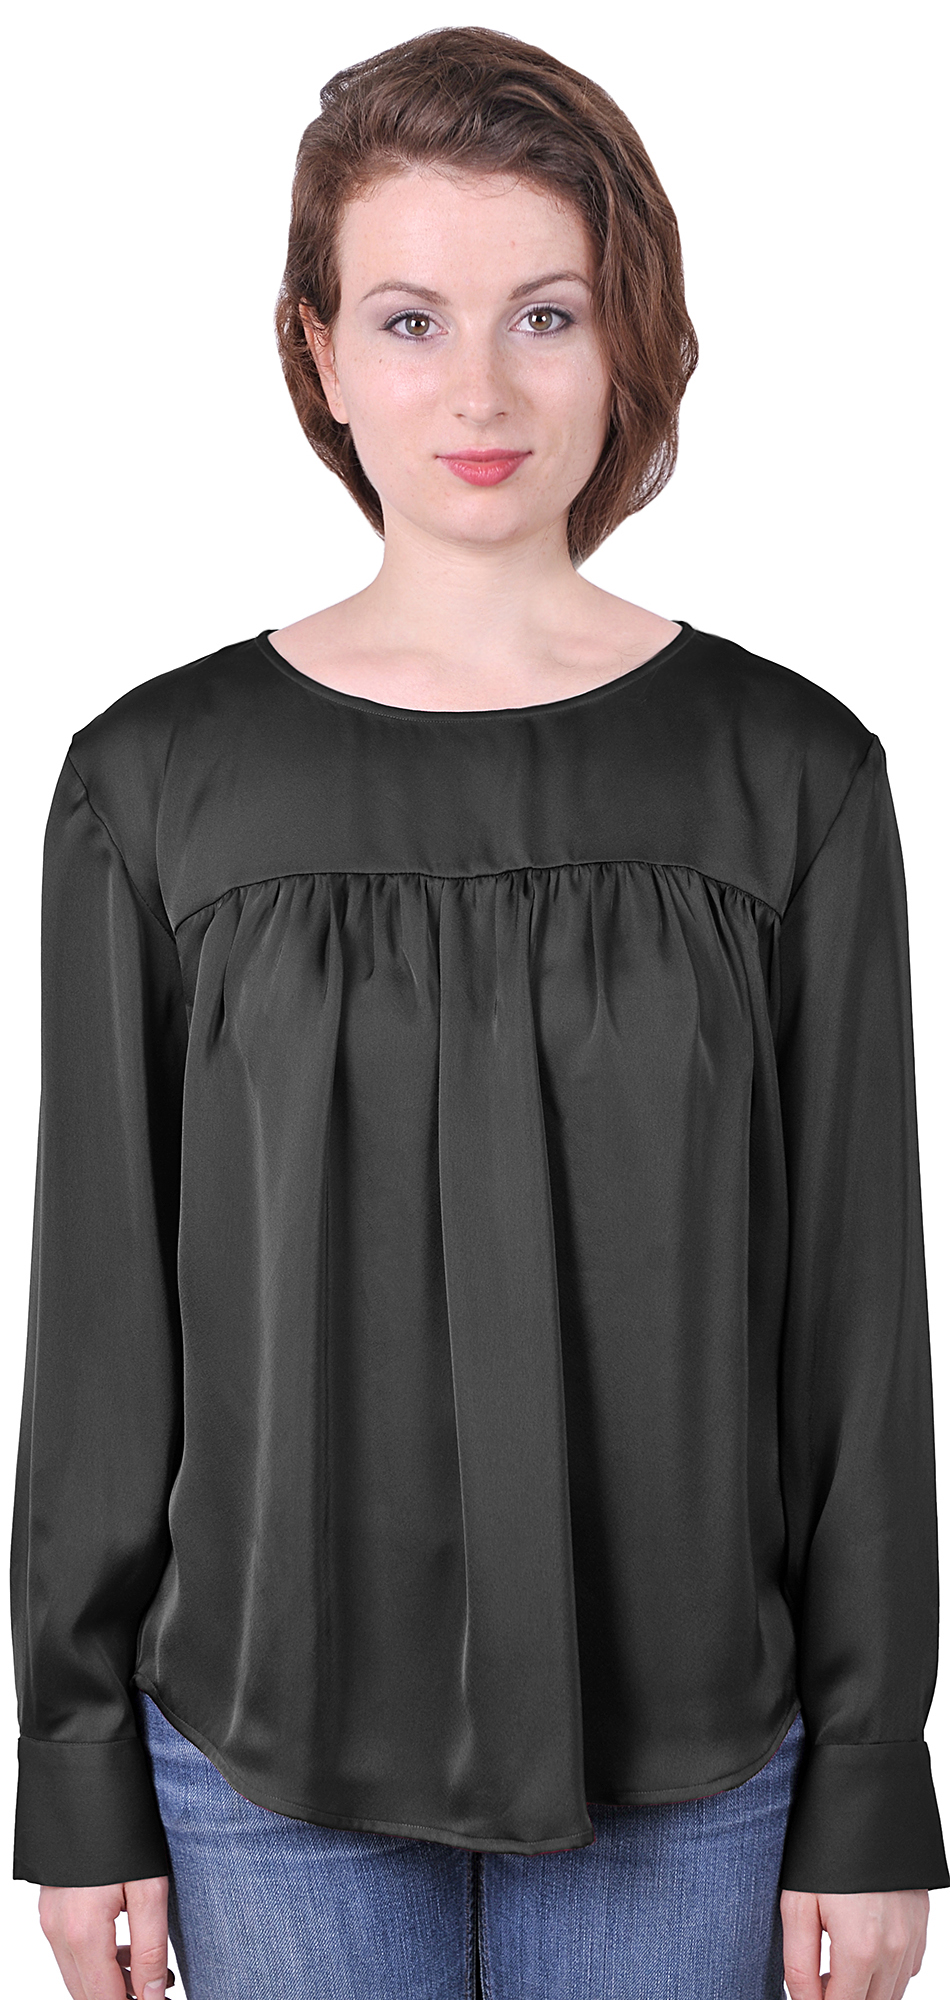 Women's Blouses. Look your best in women's blouses from Kohl's. Whether it's for work or the weekend, Kohl's has the right option for you! Explore flowing fabrics for more elegant outfits, or stick with tried and true button downs in both formal and casual styles.